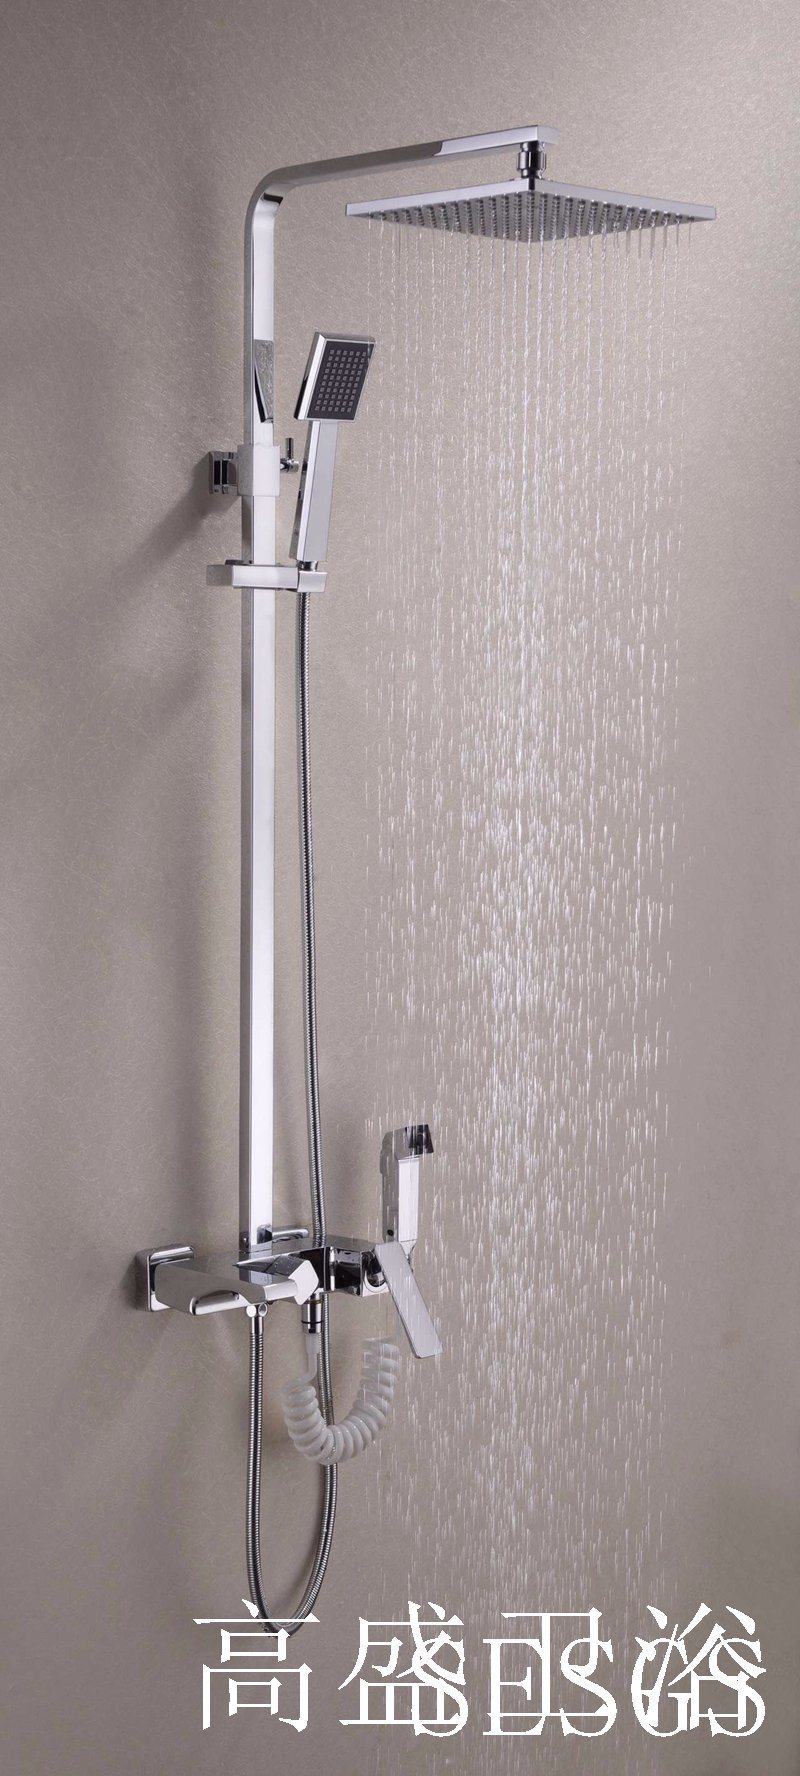 201 New Design Chinese Blue-and-White Ceramic Single Handle GS-052 Brass Rain Shower Set